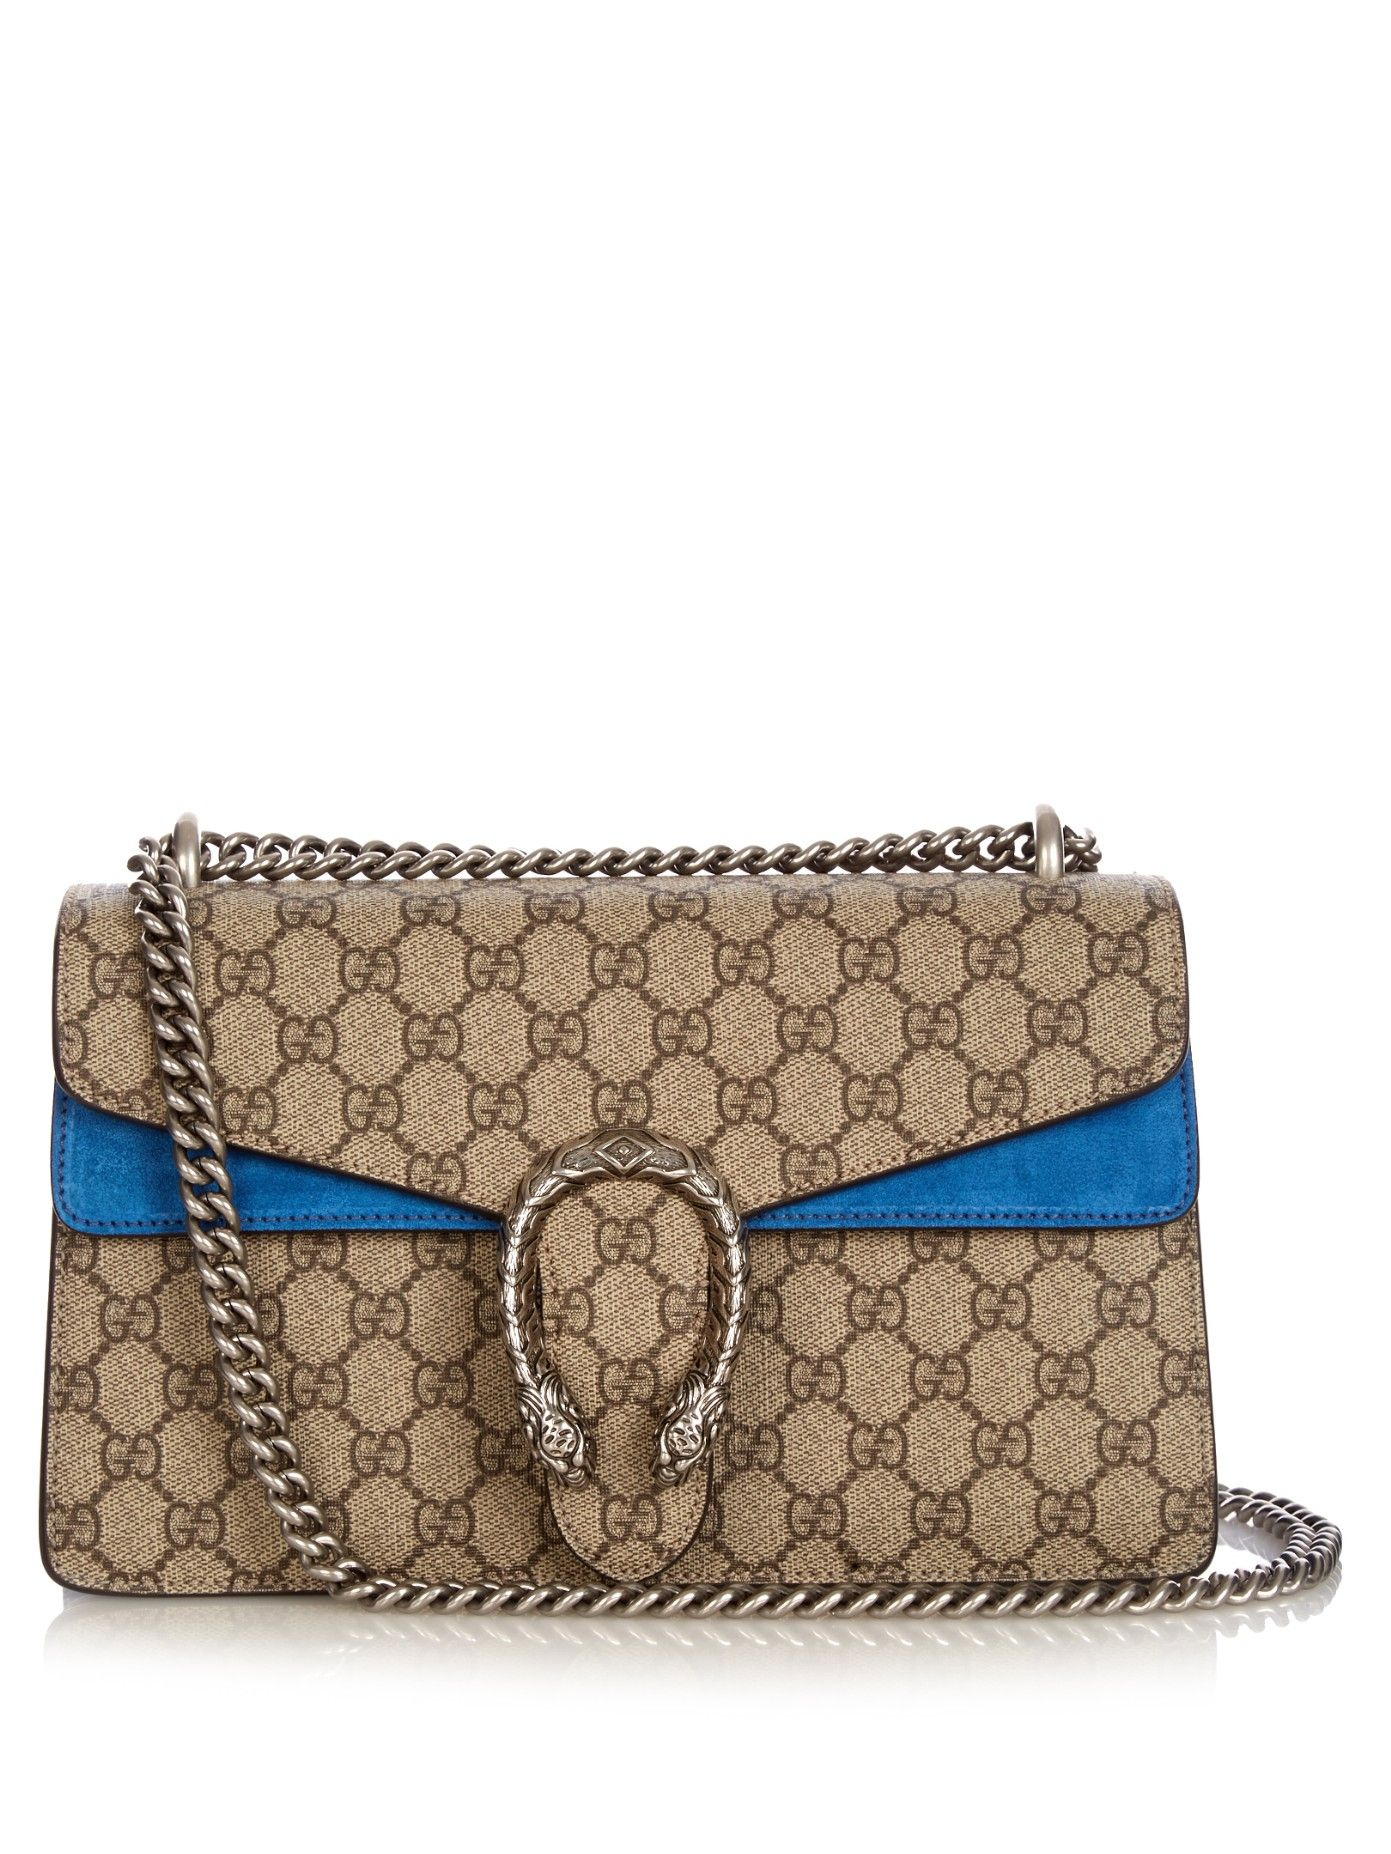 d15a0439762e Gucci's beige and brown Dionysus bag presents the iconic GG Supreme canvas  in a totally fresh guise. Persian-blue suede enlivens the boxy body, ...